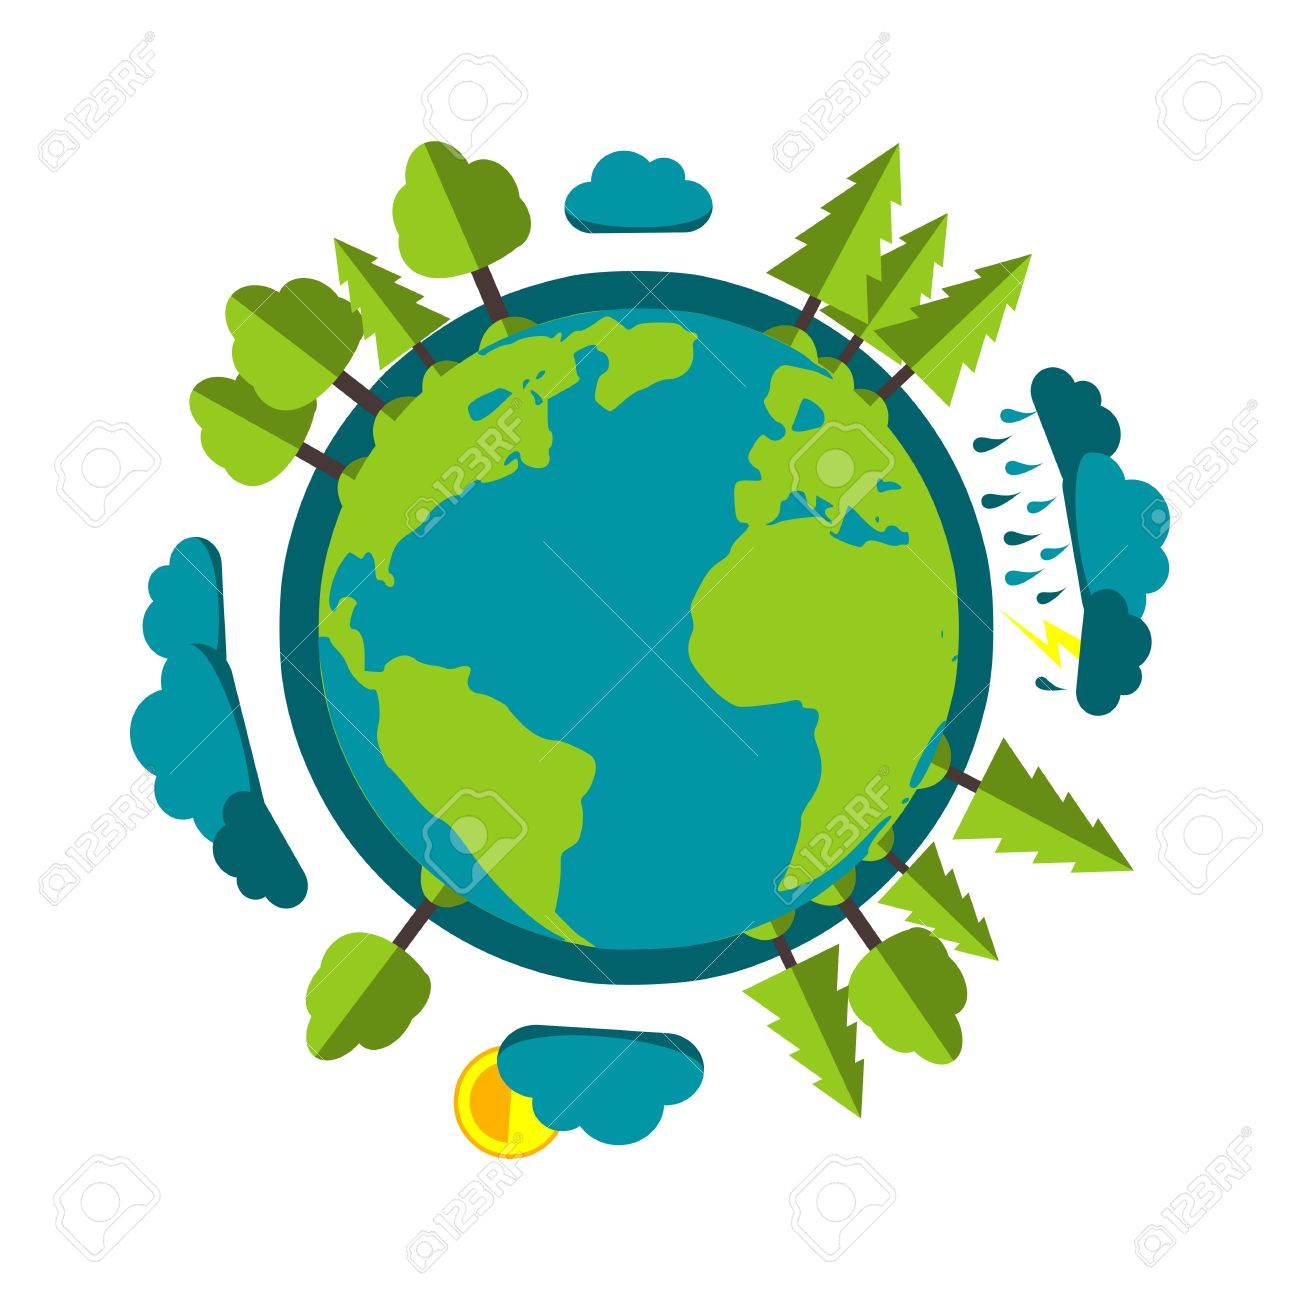 planet earth cartoon style with rain clouds sun and green nature rh 123rf com earth science cartoon images earth cartoon pictures